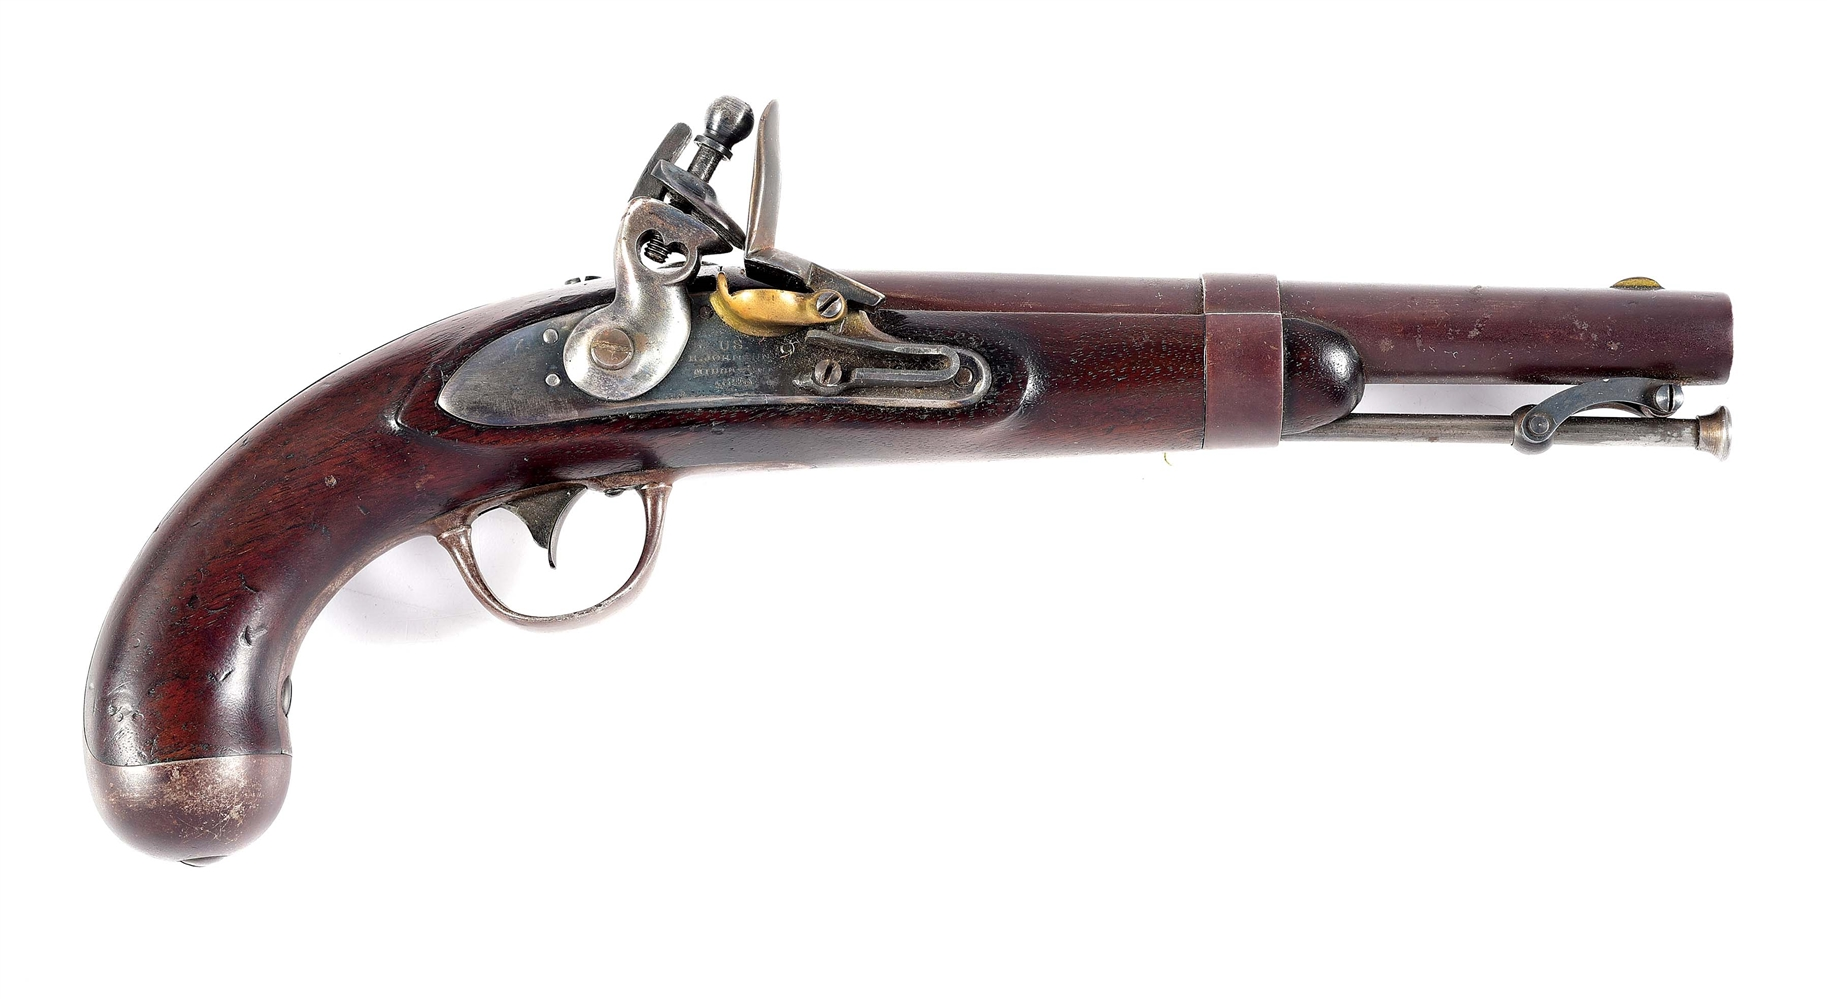 (A) R. JOHNSON 1836/1843 FLINTLOCK PISTOL.